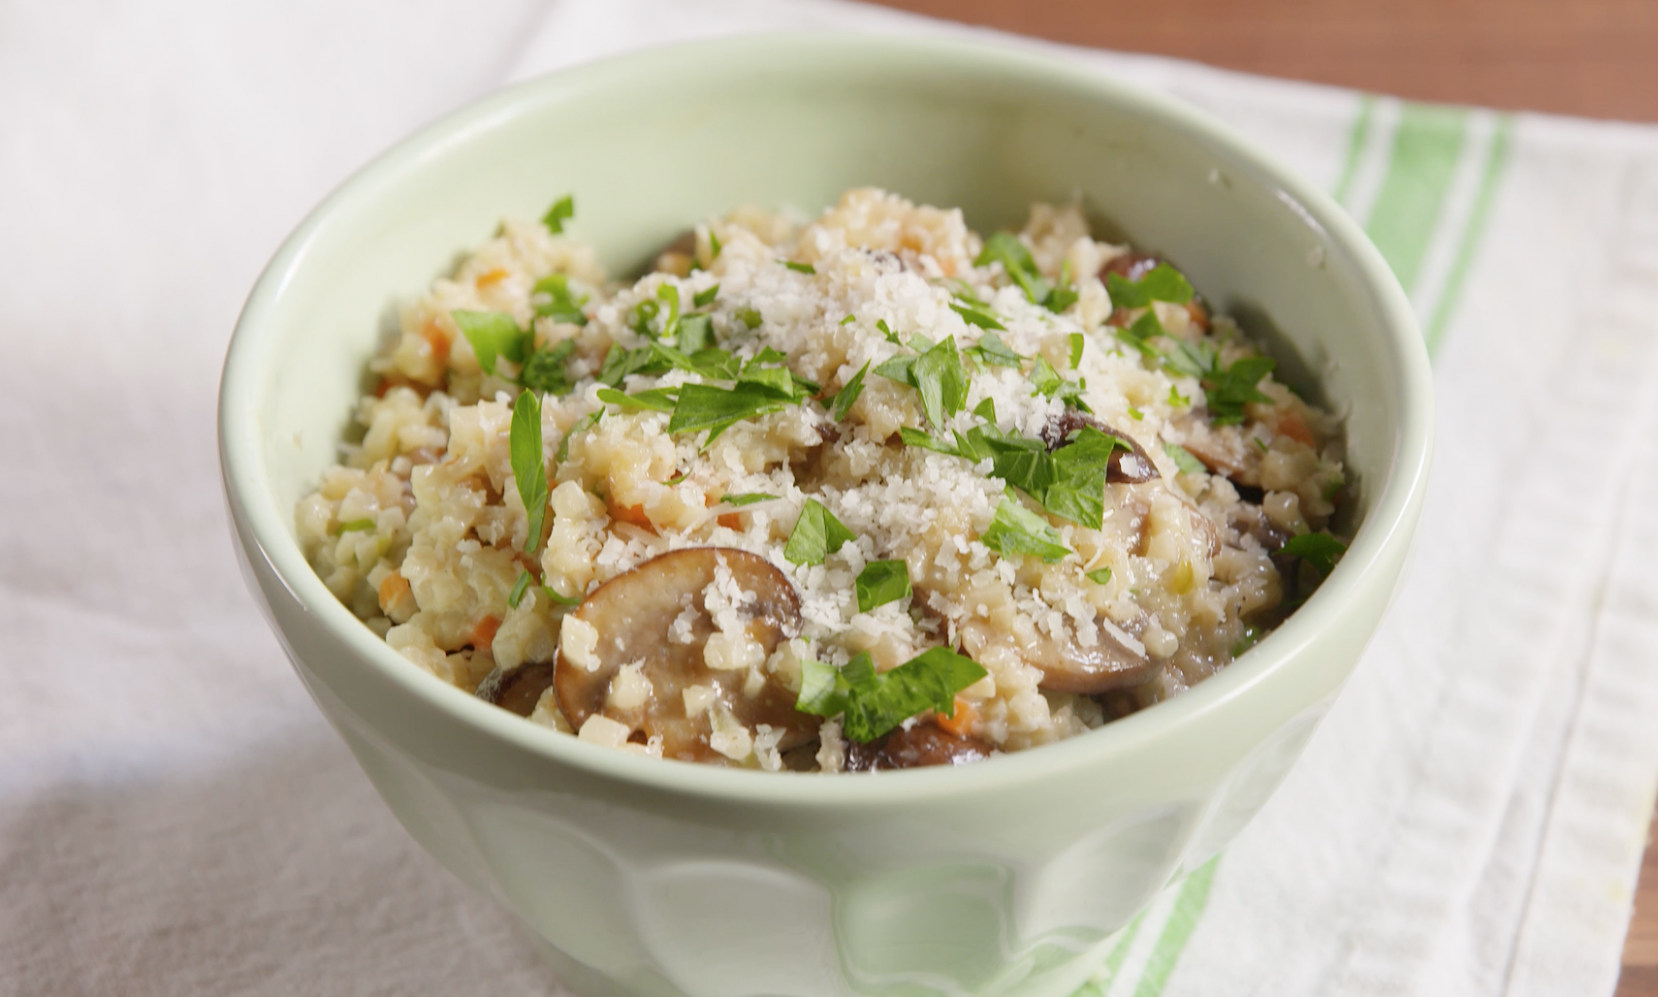 Mushroom Risotto with Riced Cauliflower Medley - recipe vegetarian risotto